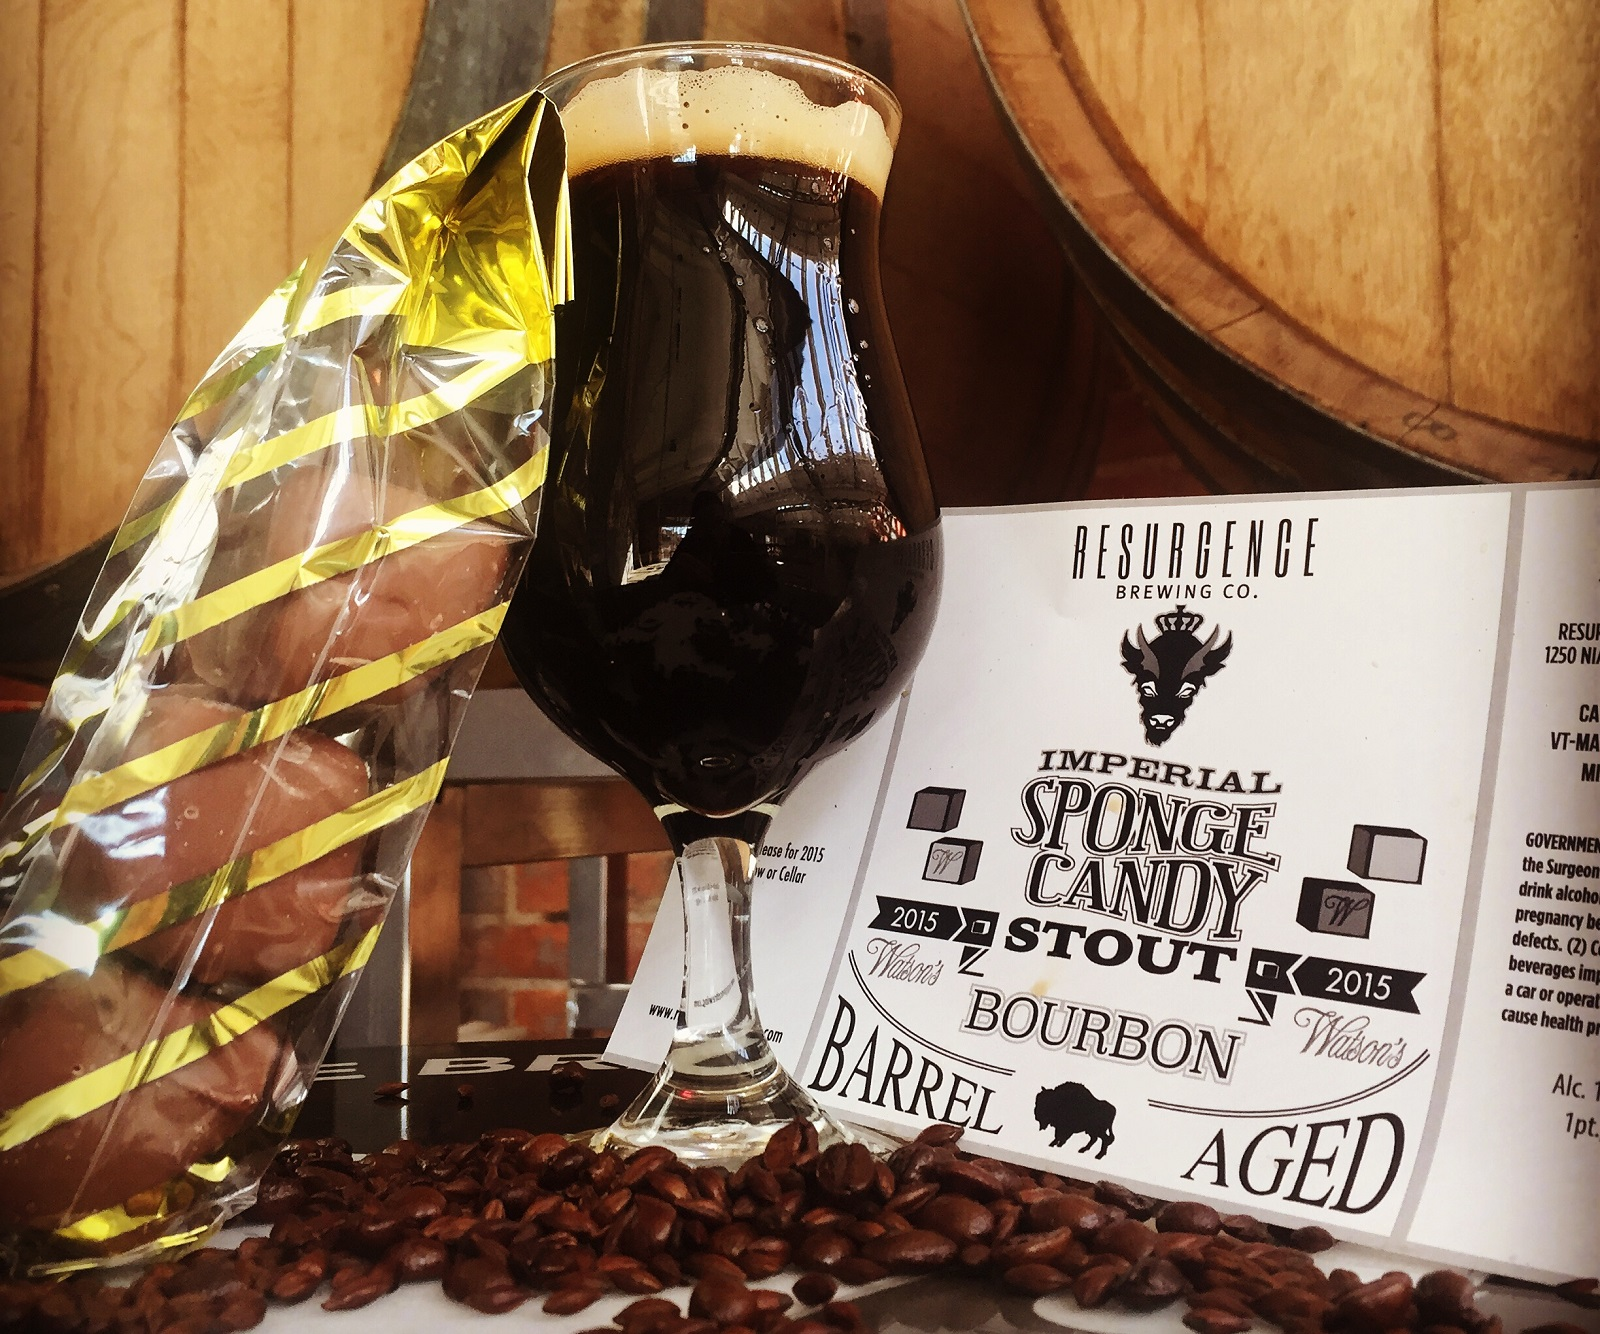 Resurgence Brewing Co. has updated its original  barrel-aged Sponge Candy Stout (pictured) by adding milk sugar. (Courtesy Resurgence)